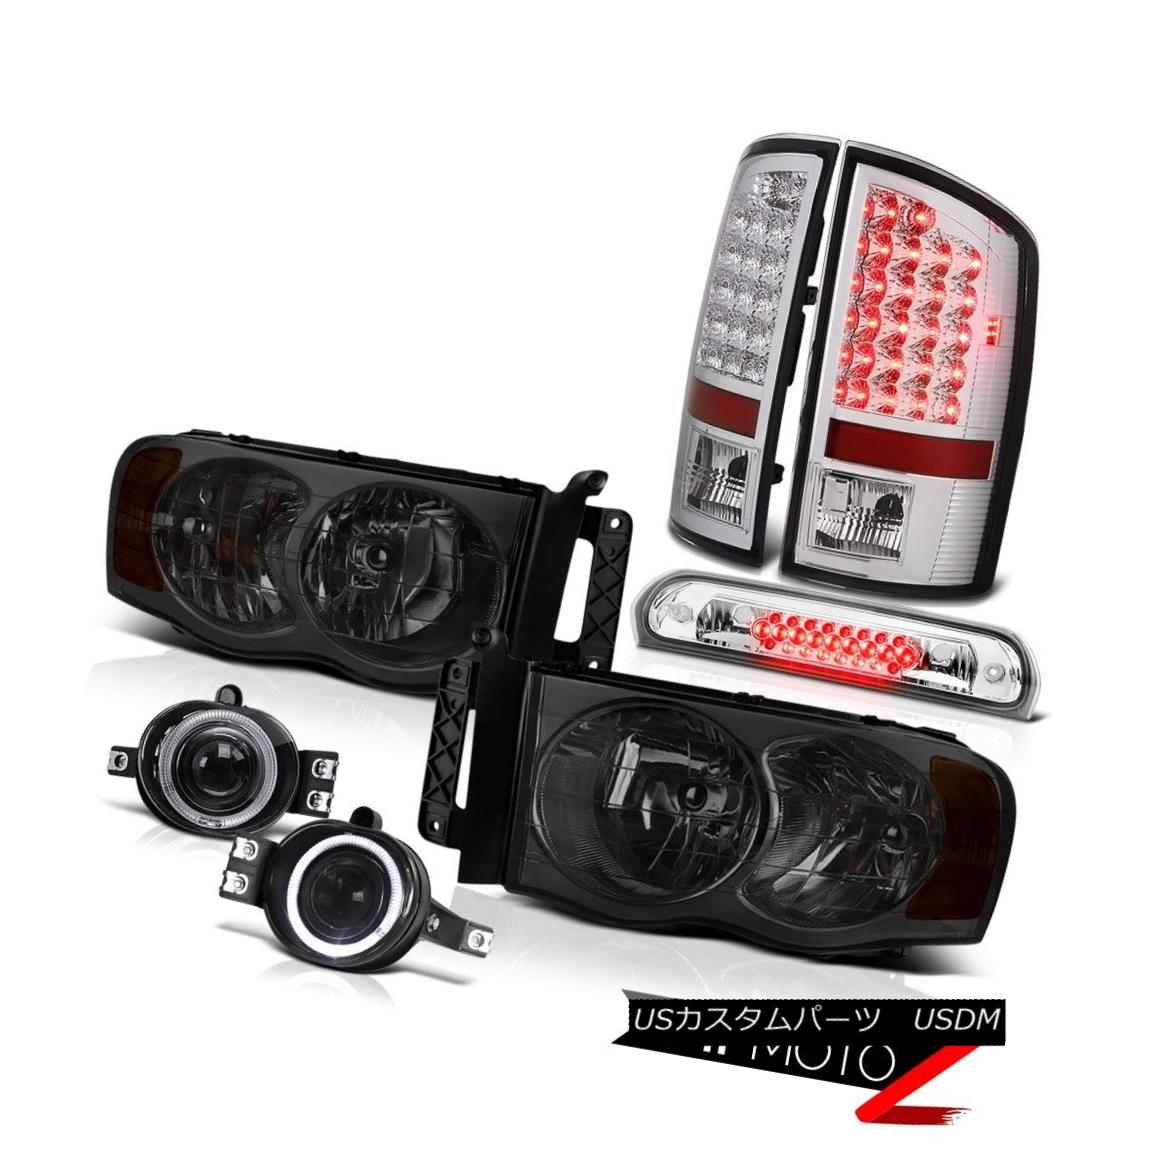 テールライト 02 03 04 05 Ram V8 Crystal Headlights LED Tail Lights Projector Foglights 3rd 02 03 04 05 Ram V8クリスタルヘッドライトLEDテールライトプロジェクターFoglights 3rd